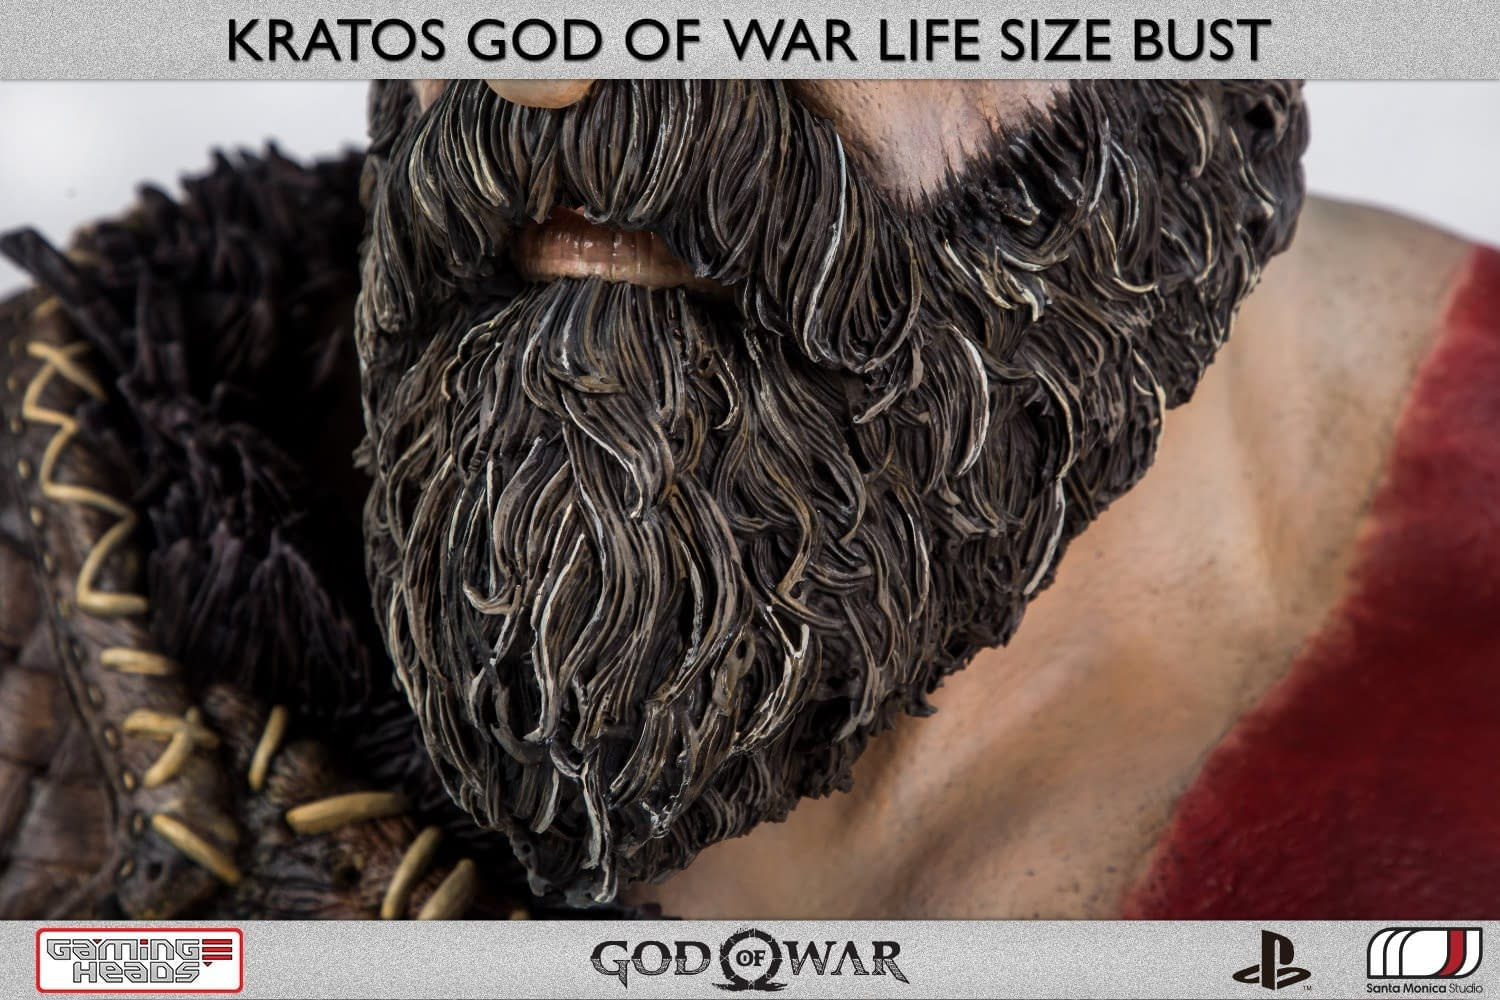 God of War Kratos Life Size Bust from Gaming Heads